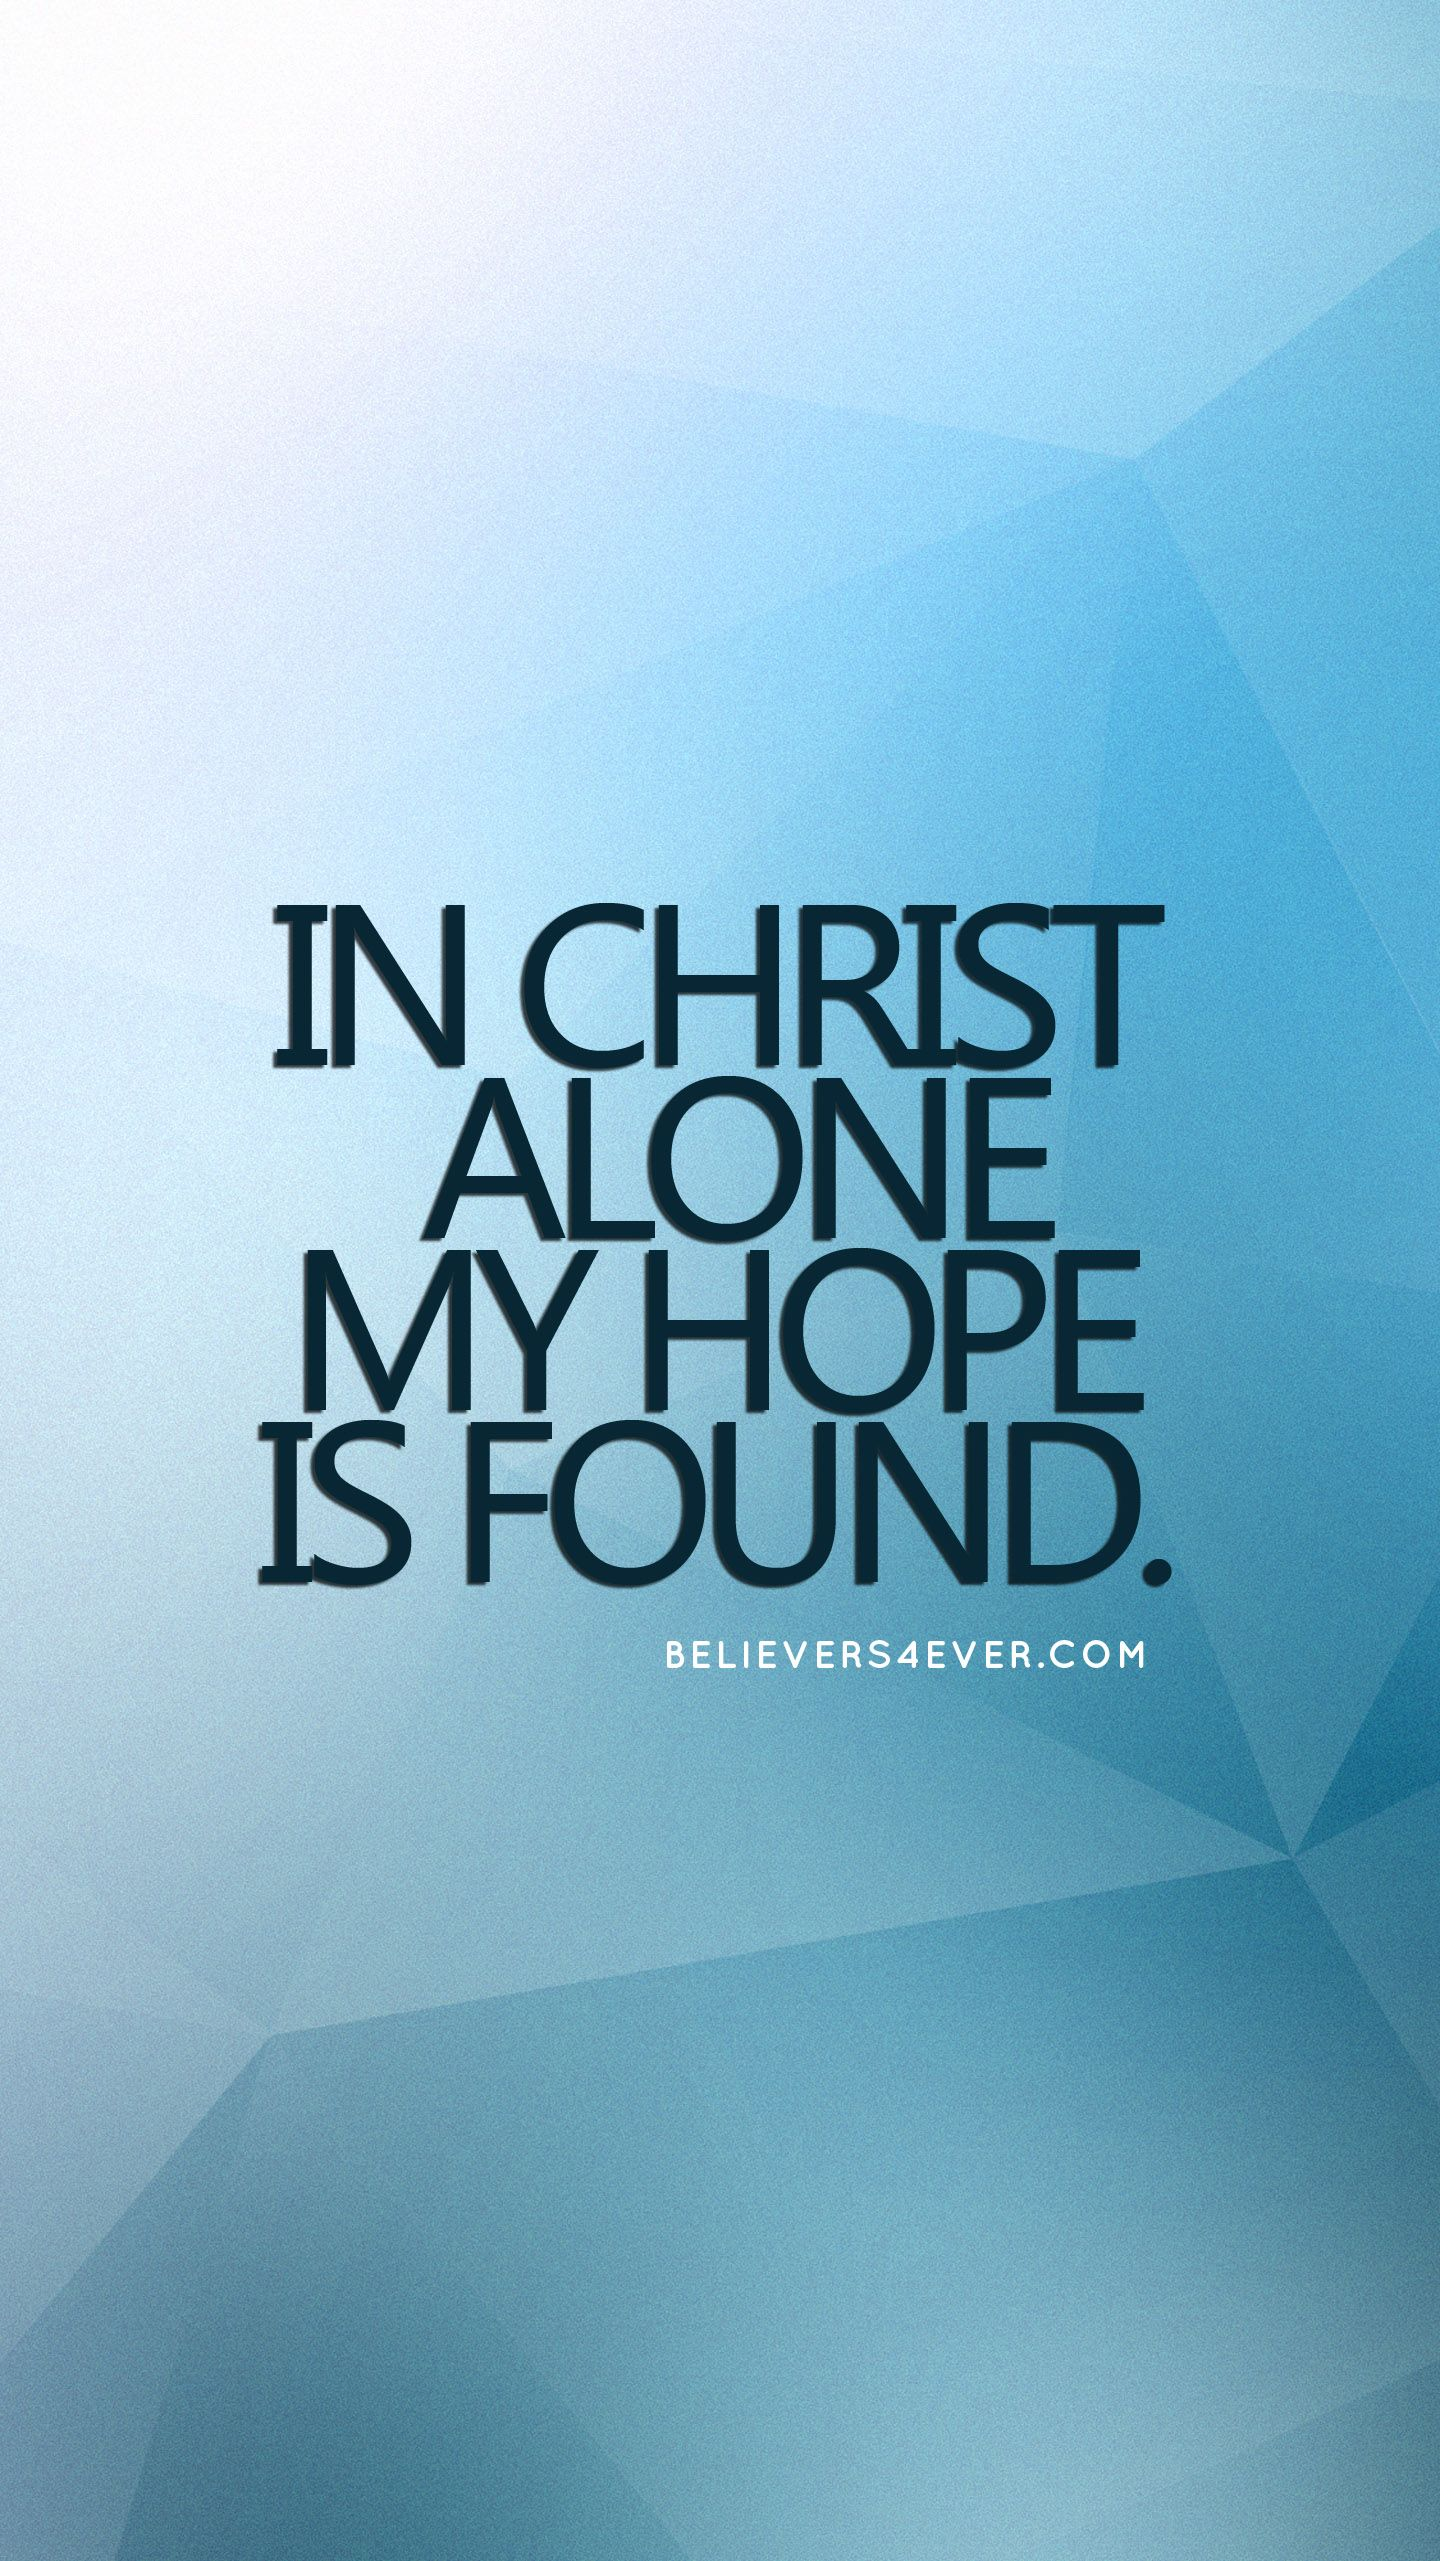 In christ alone my hope is found free mobile wallpaper background in christ alone my hope is found free mobile wallpaper background download free mobile voltagebd Image collections